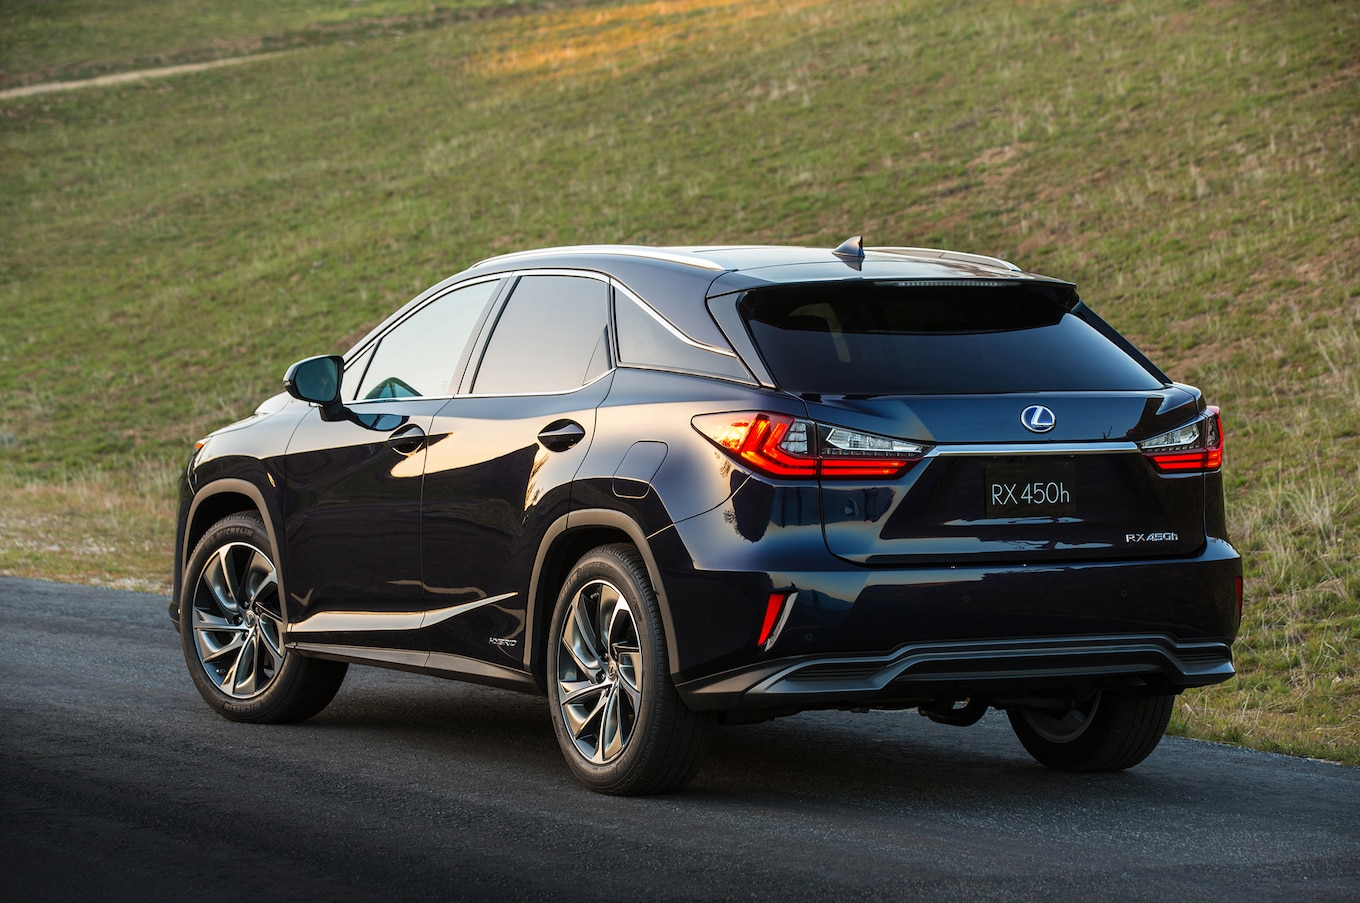 2016 Lexus RX450h Reviews and Rating